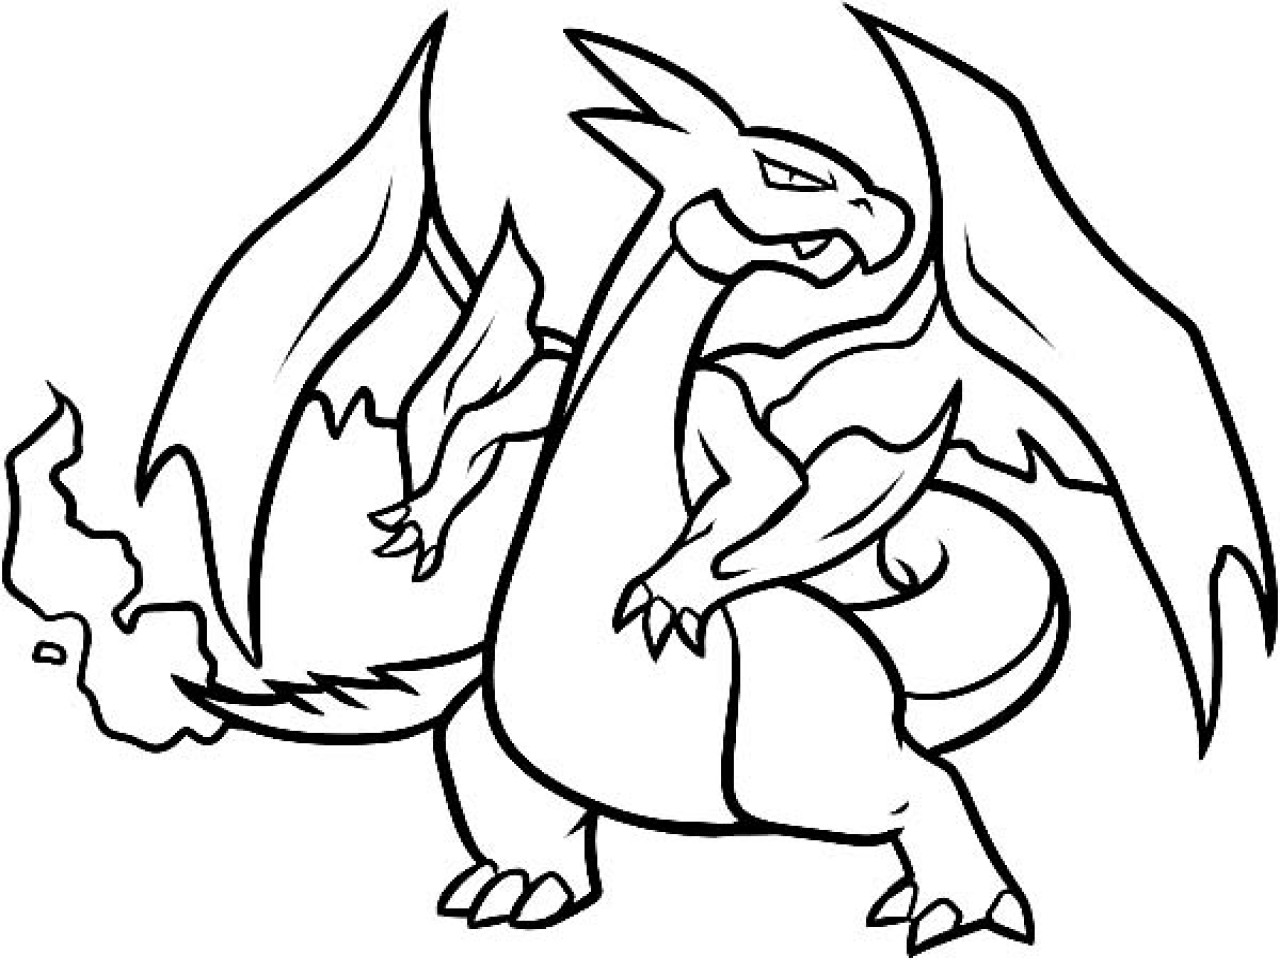 pokemon mega charizard x coloring pages charizard x drawing at getdrawings free download x charizard pages pokemon mega coloring